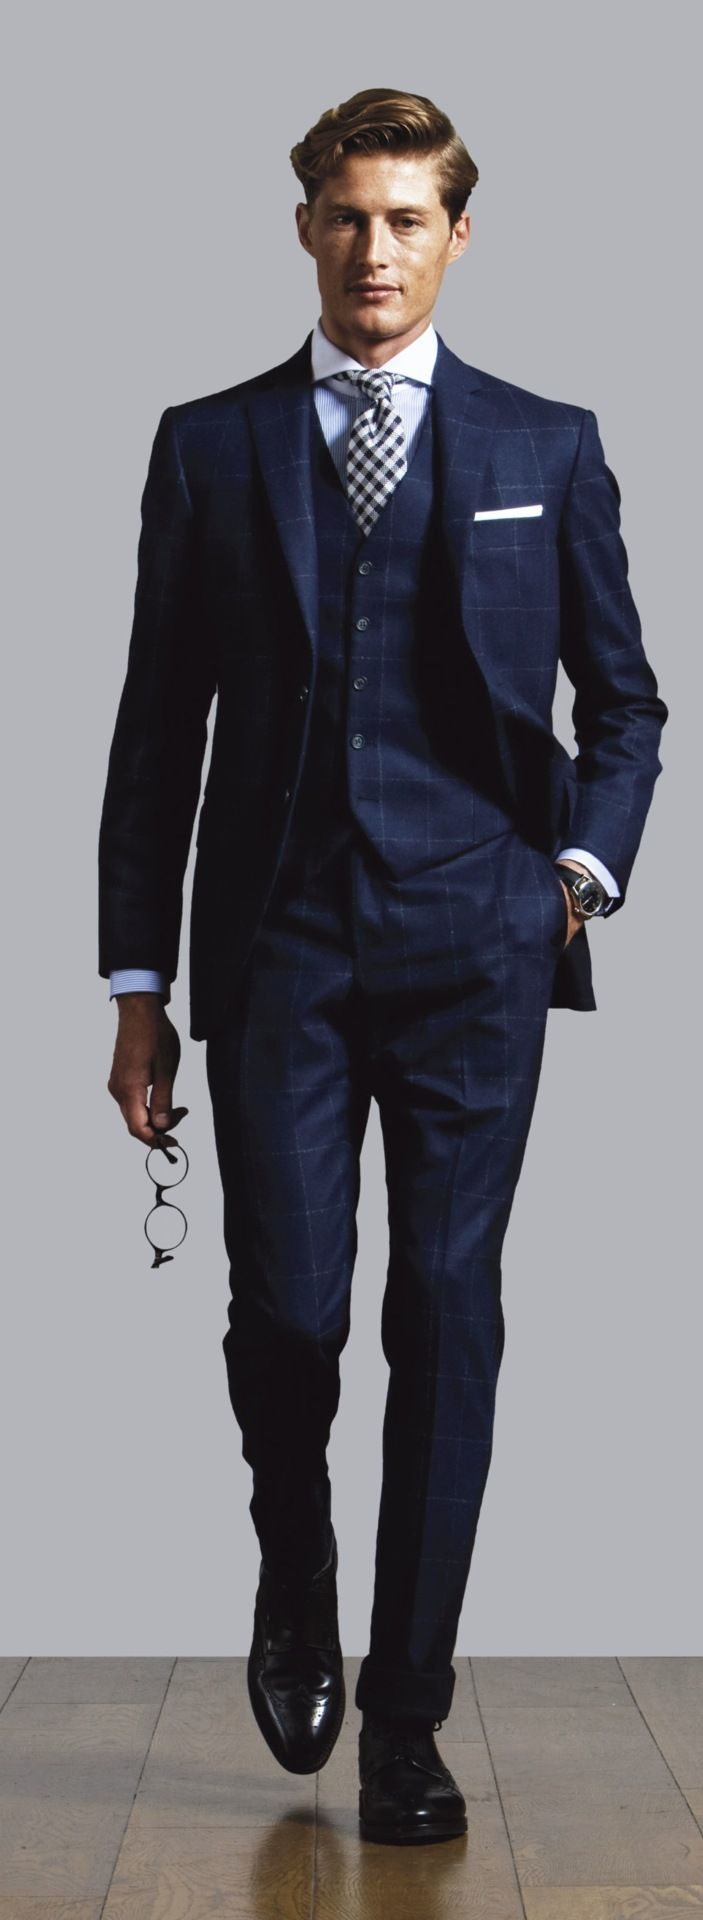 Navy suit fashion pinterest dandy dapper and navy